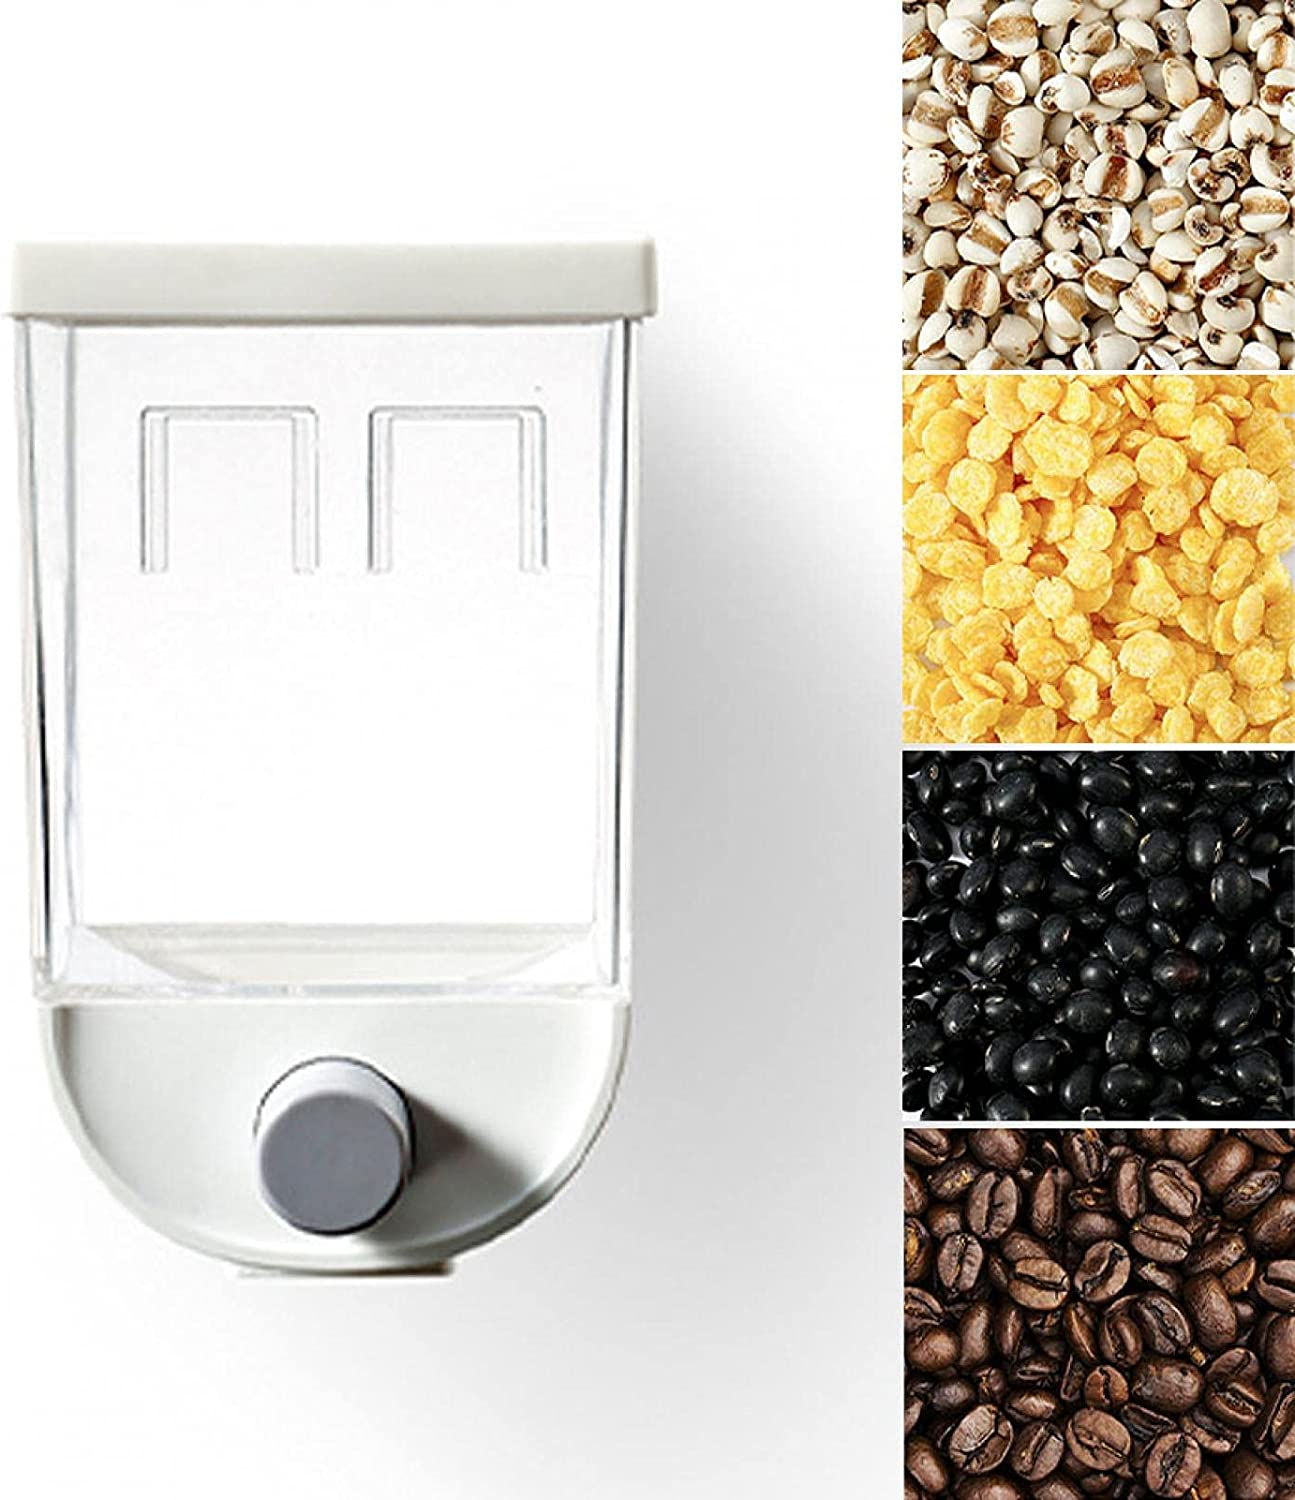 Spring new work Wall-mounted Cereal Under blast sales Container Dispenser Food Containers Storage